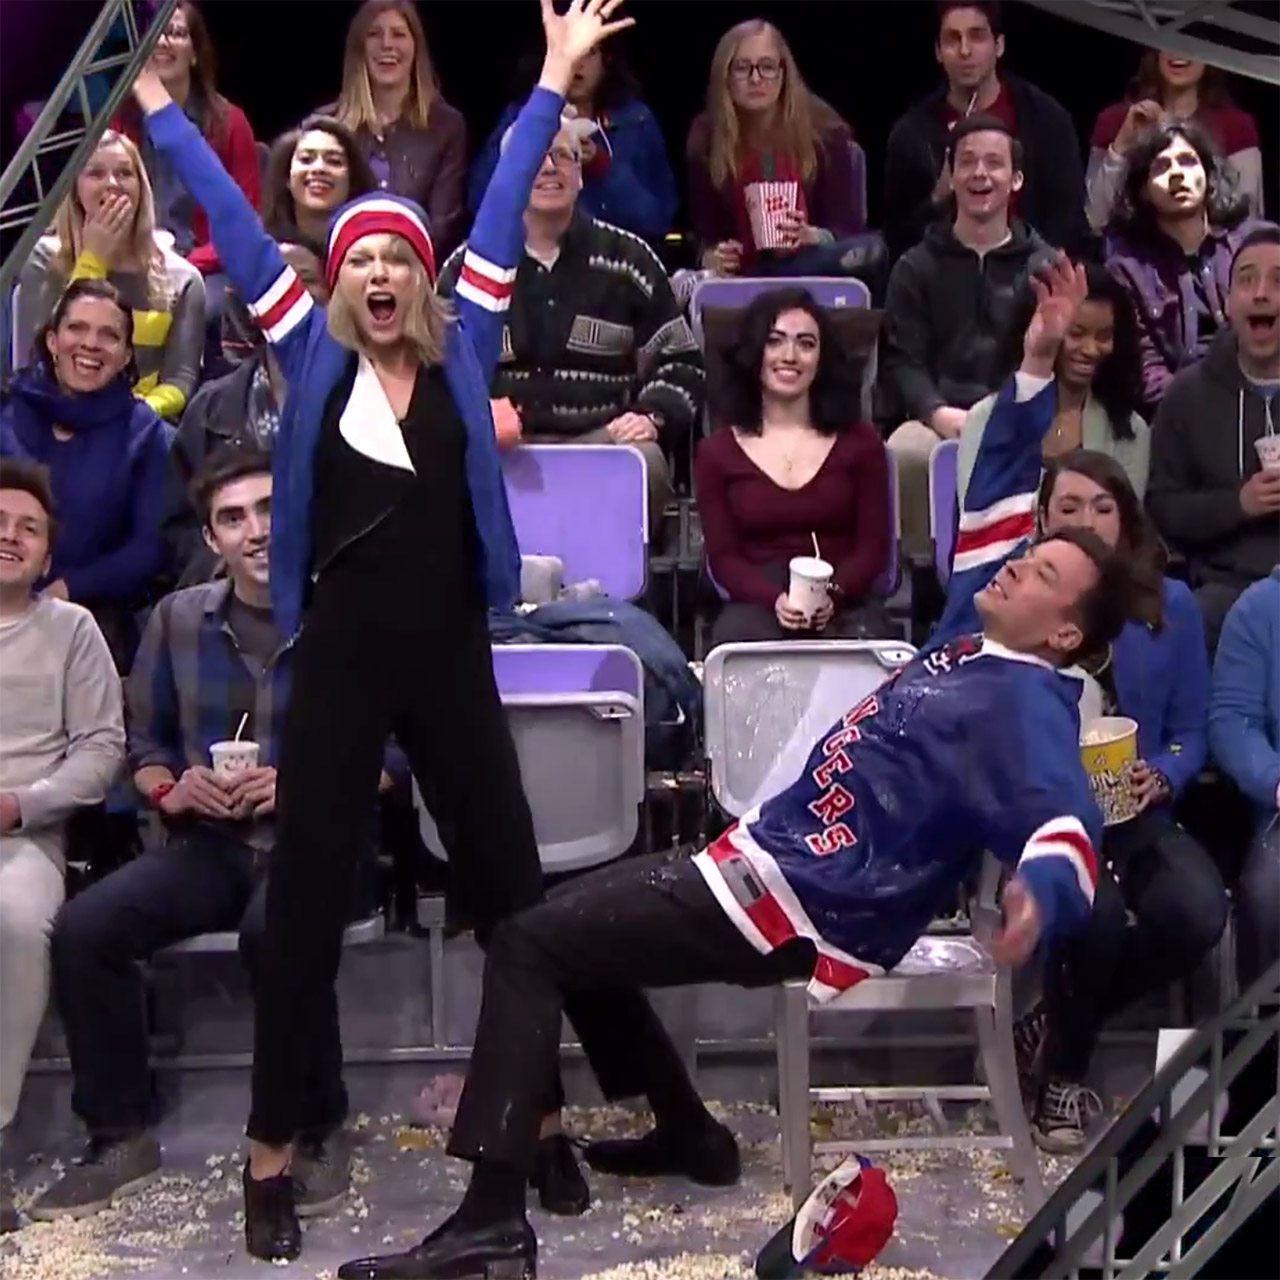 Jimmy Fallon and Taylor Swift are NYC fan-cam dancers